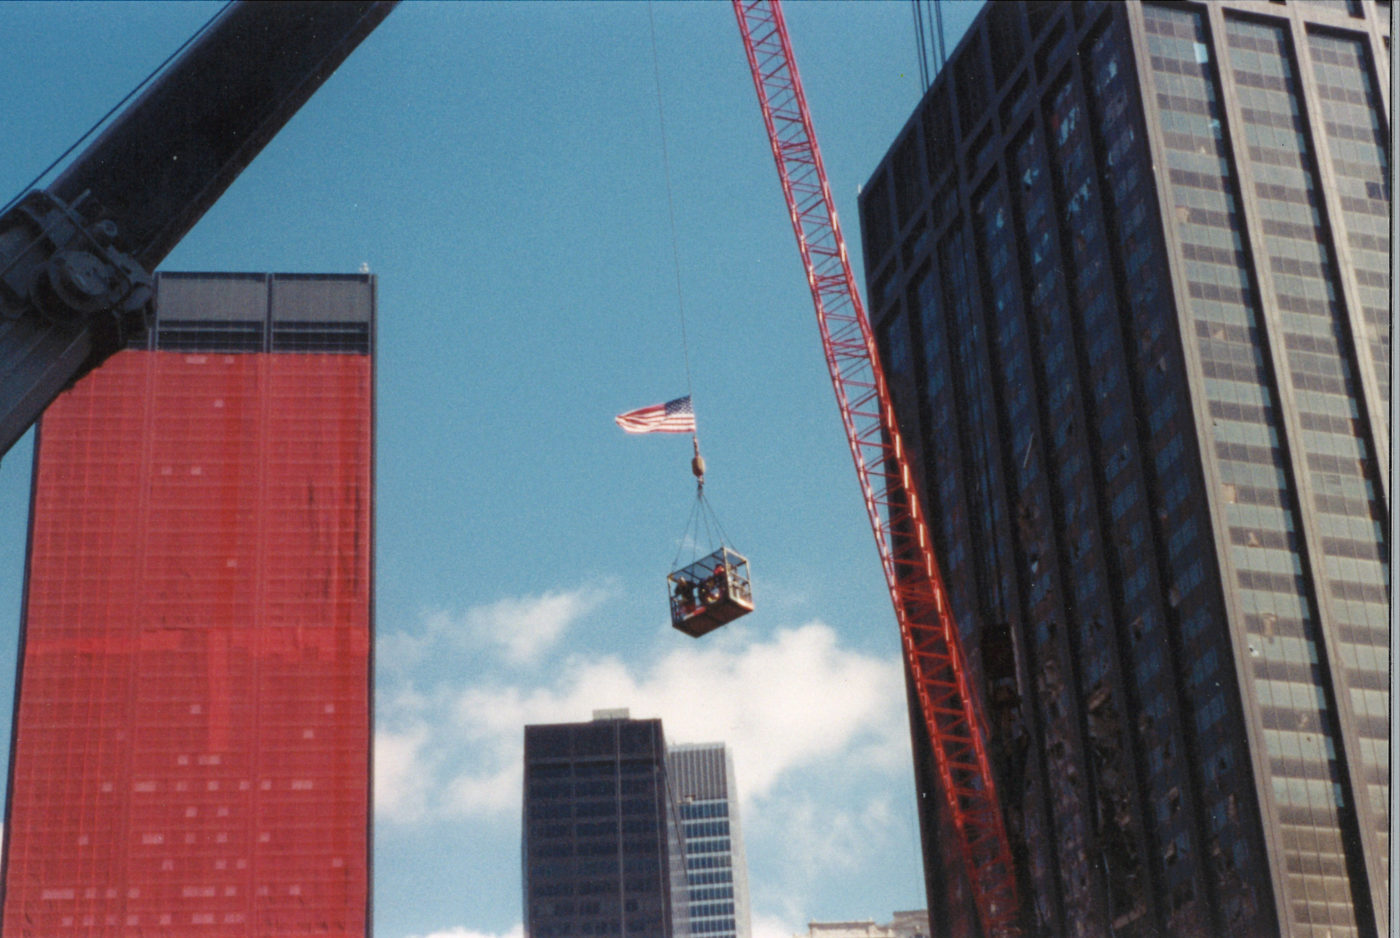 Workers Suspended in a Crane Basket with One Liberty Plaza and the Deutsche Bank Building in the Back